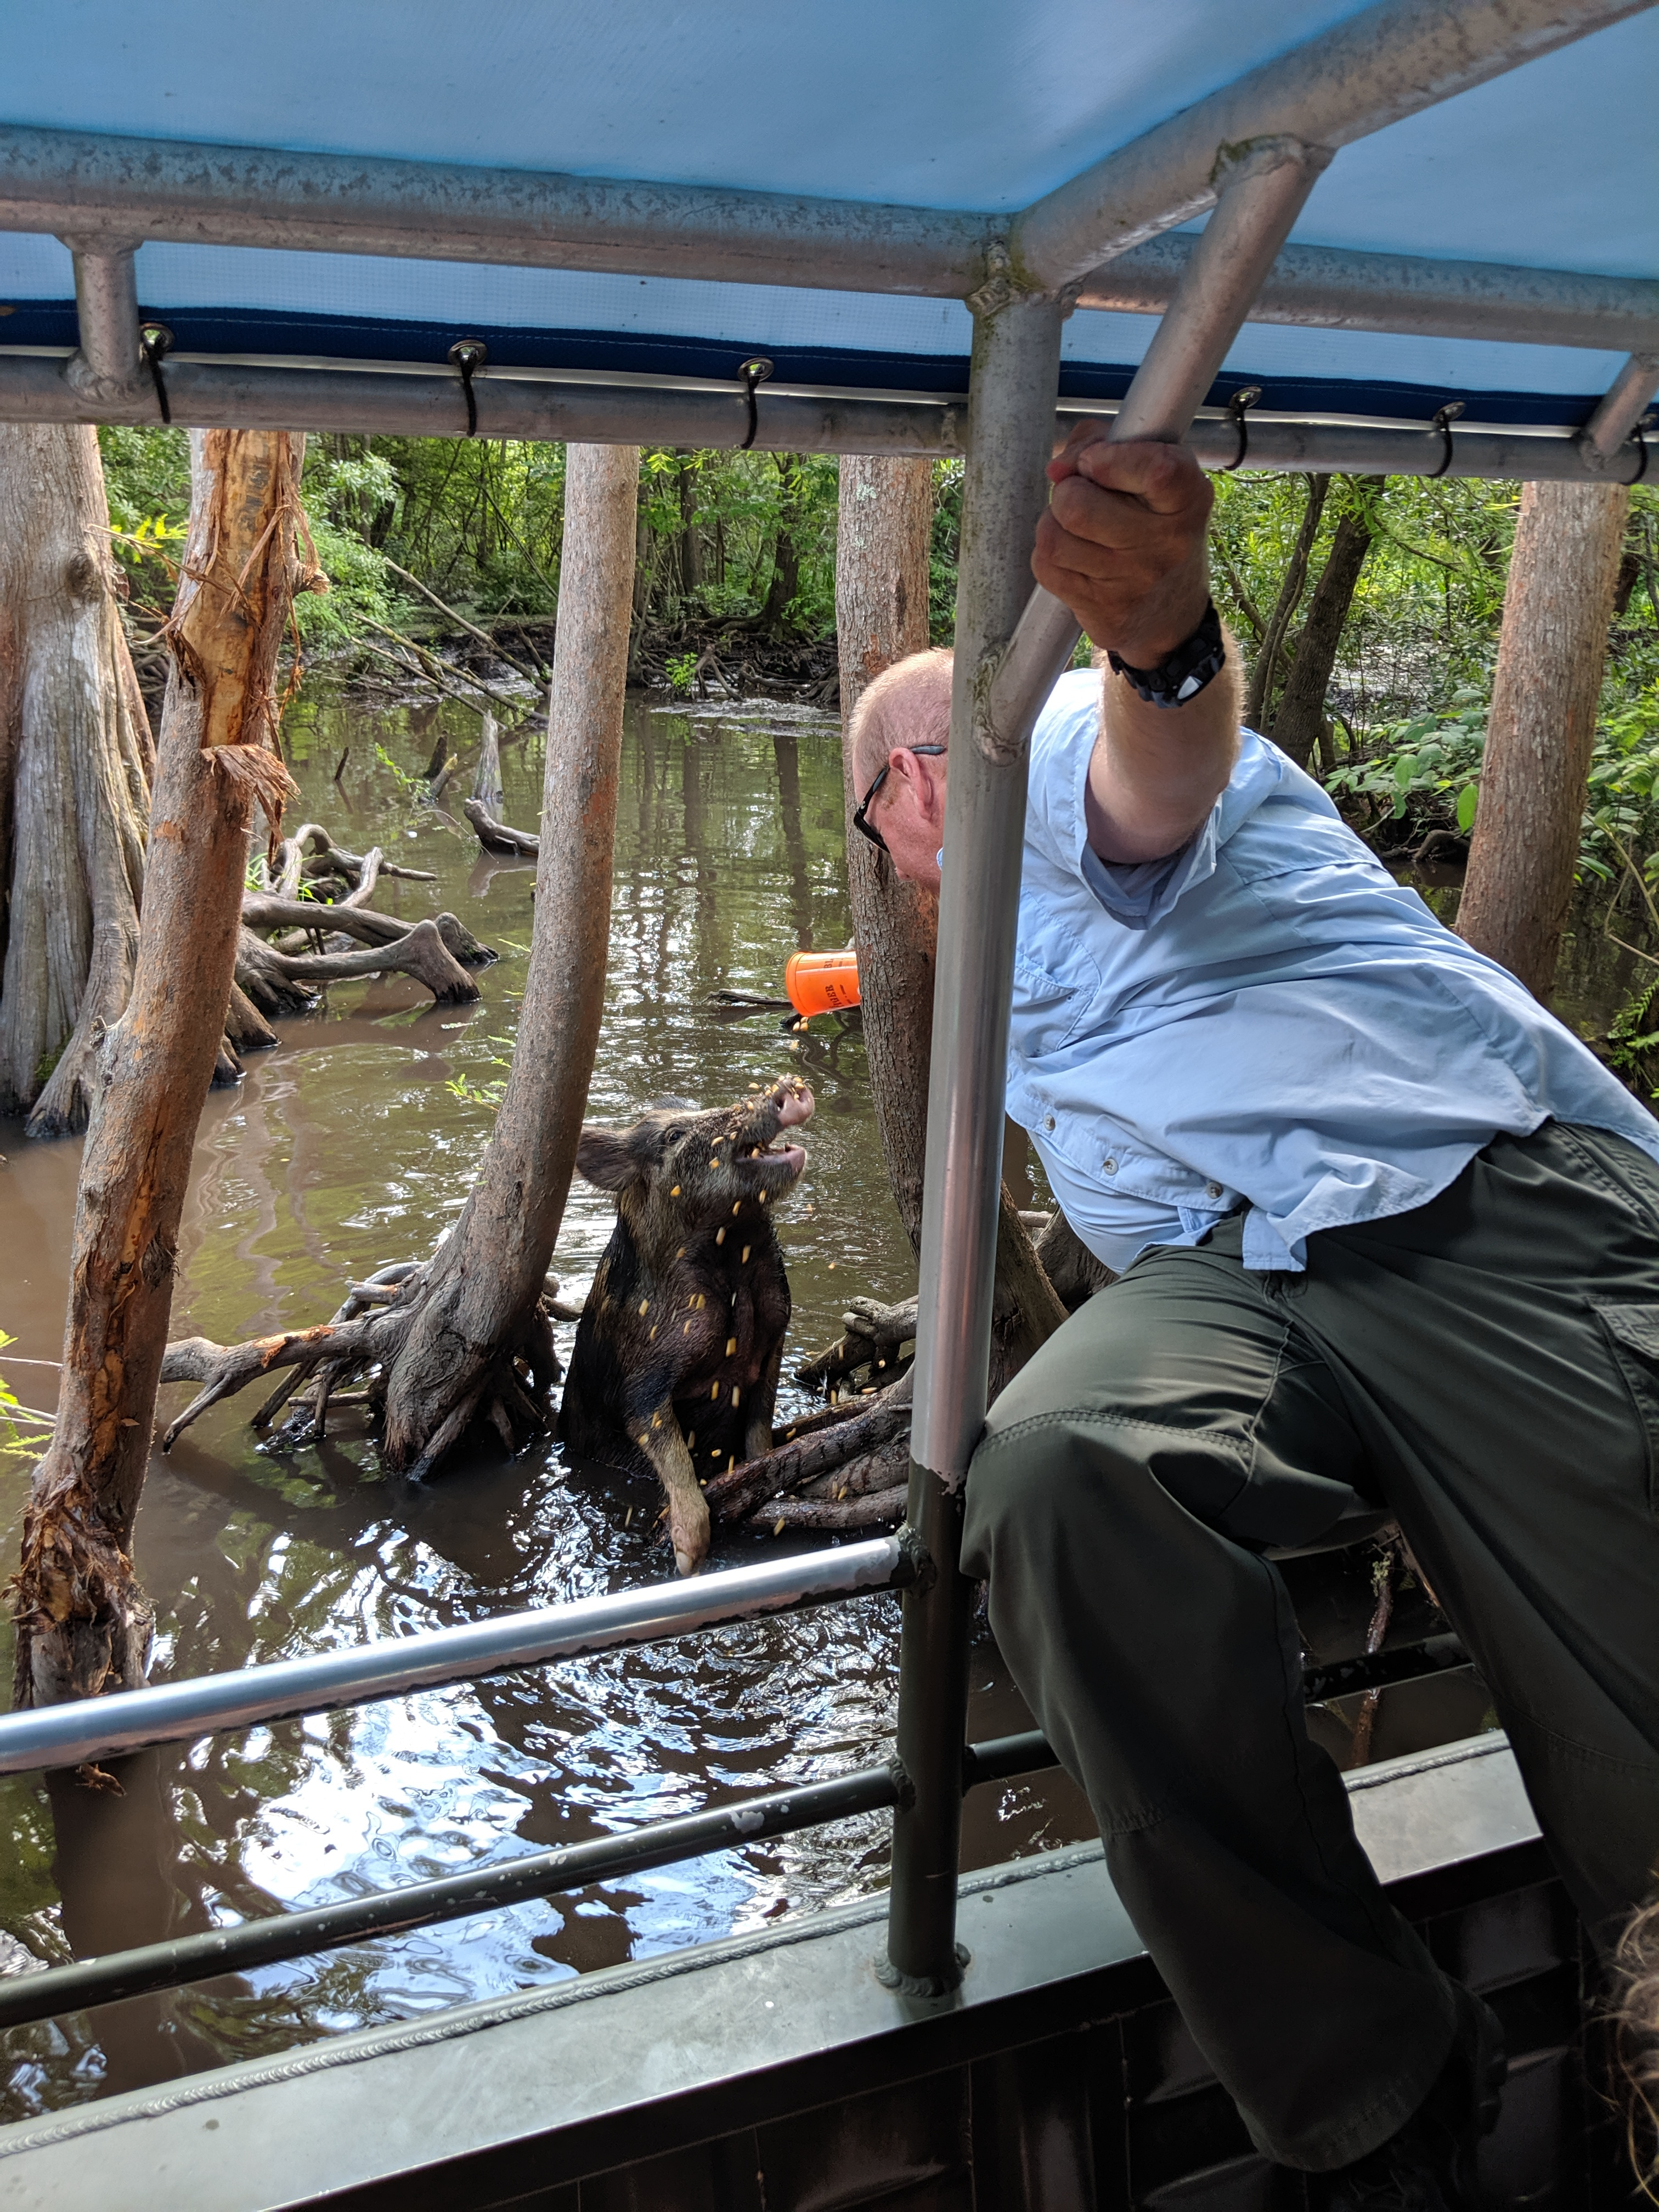 A man in a blue shirt leaning out of a boat in a swamp to feed a wild pig from an orange cup